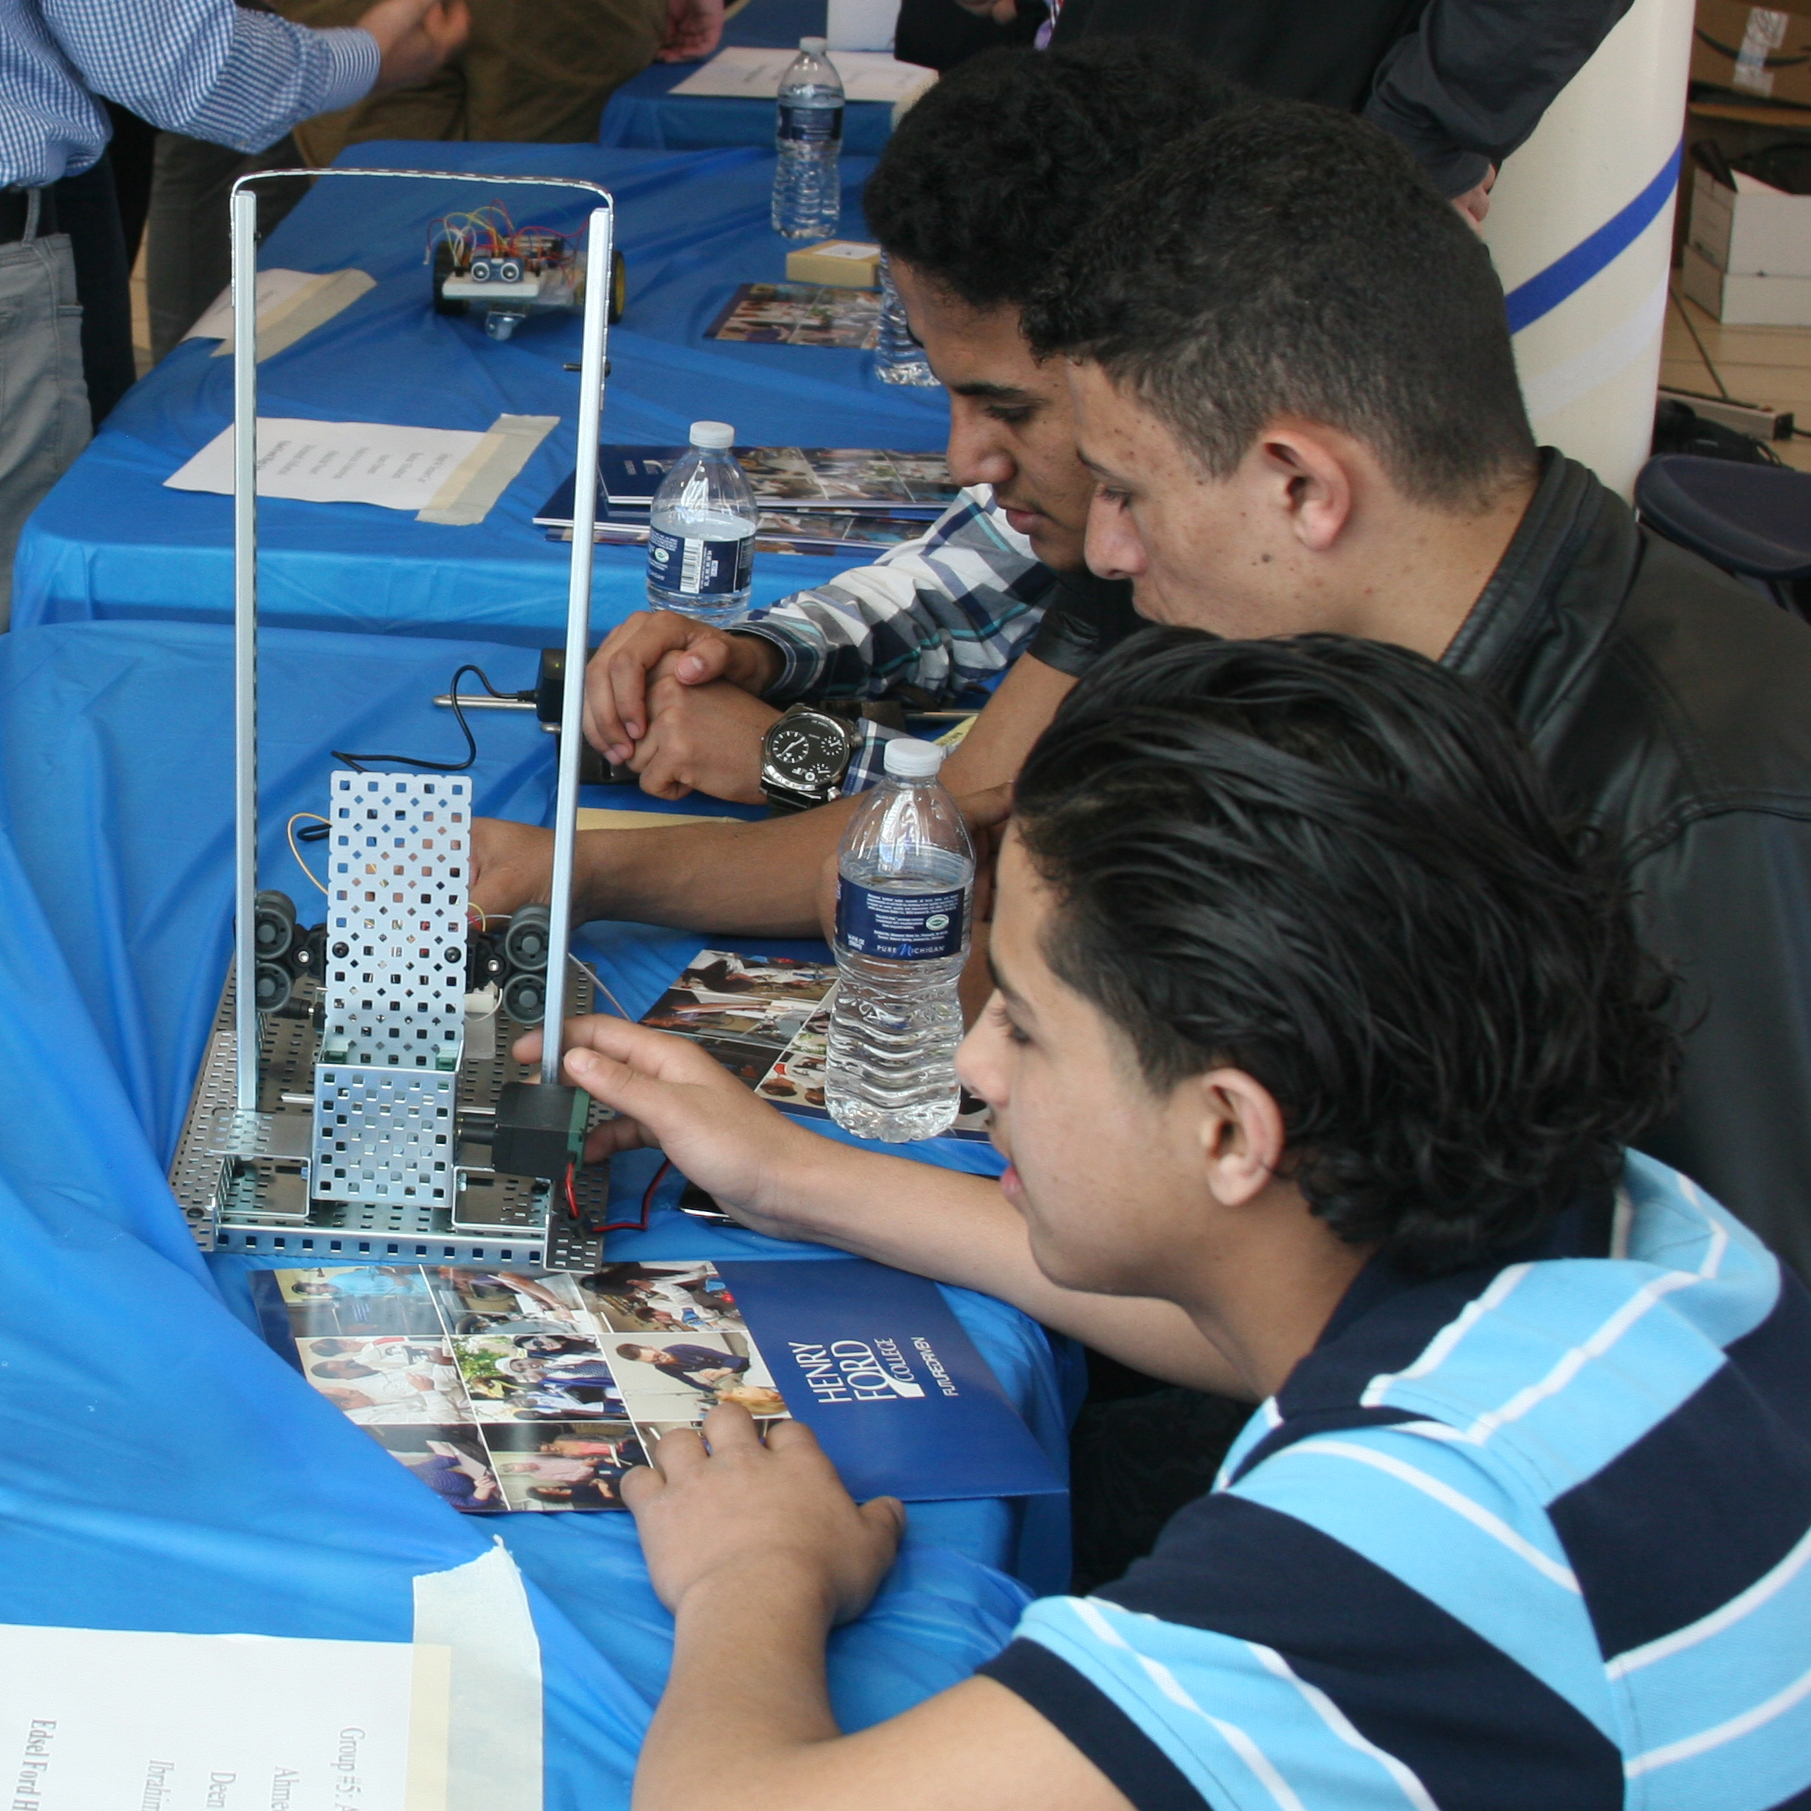 Group of four people sitting at a booth showcasing a robotic vehicle